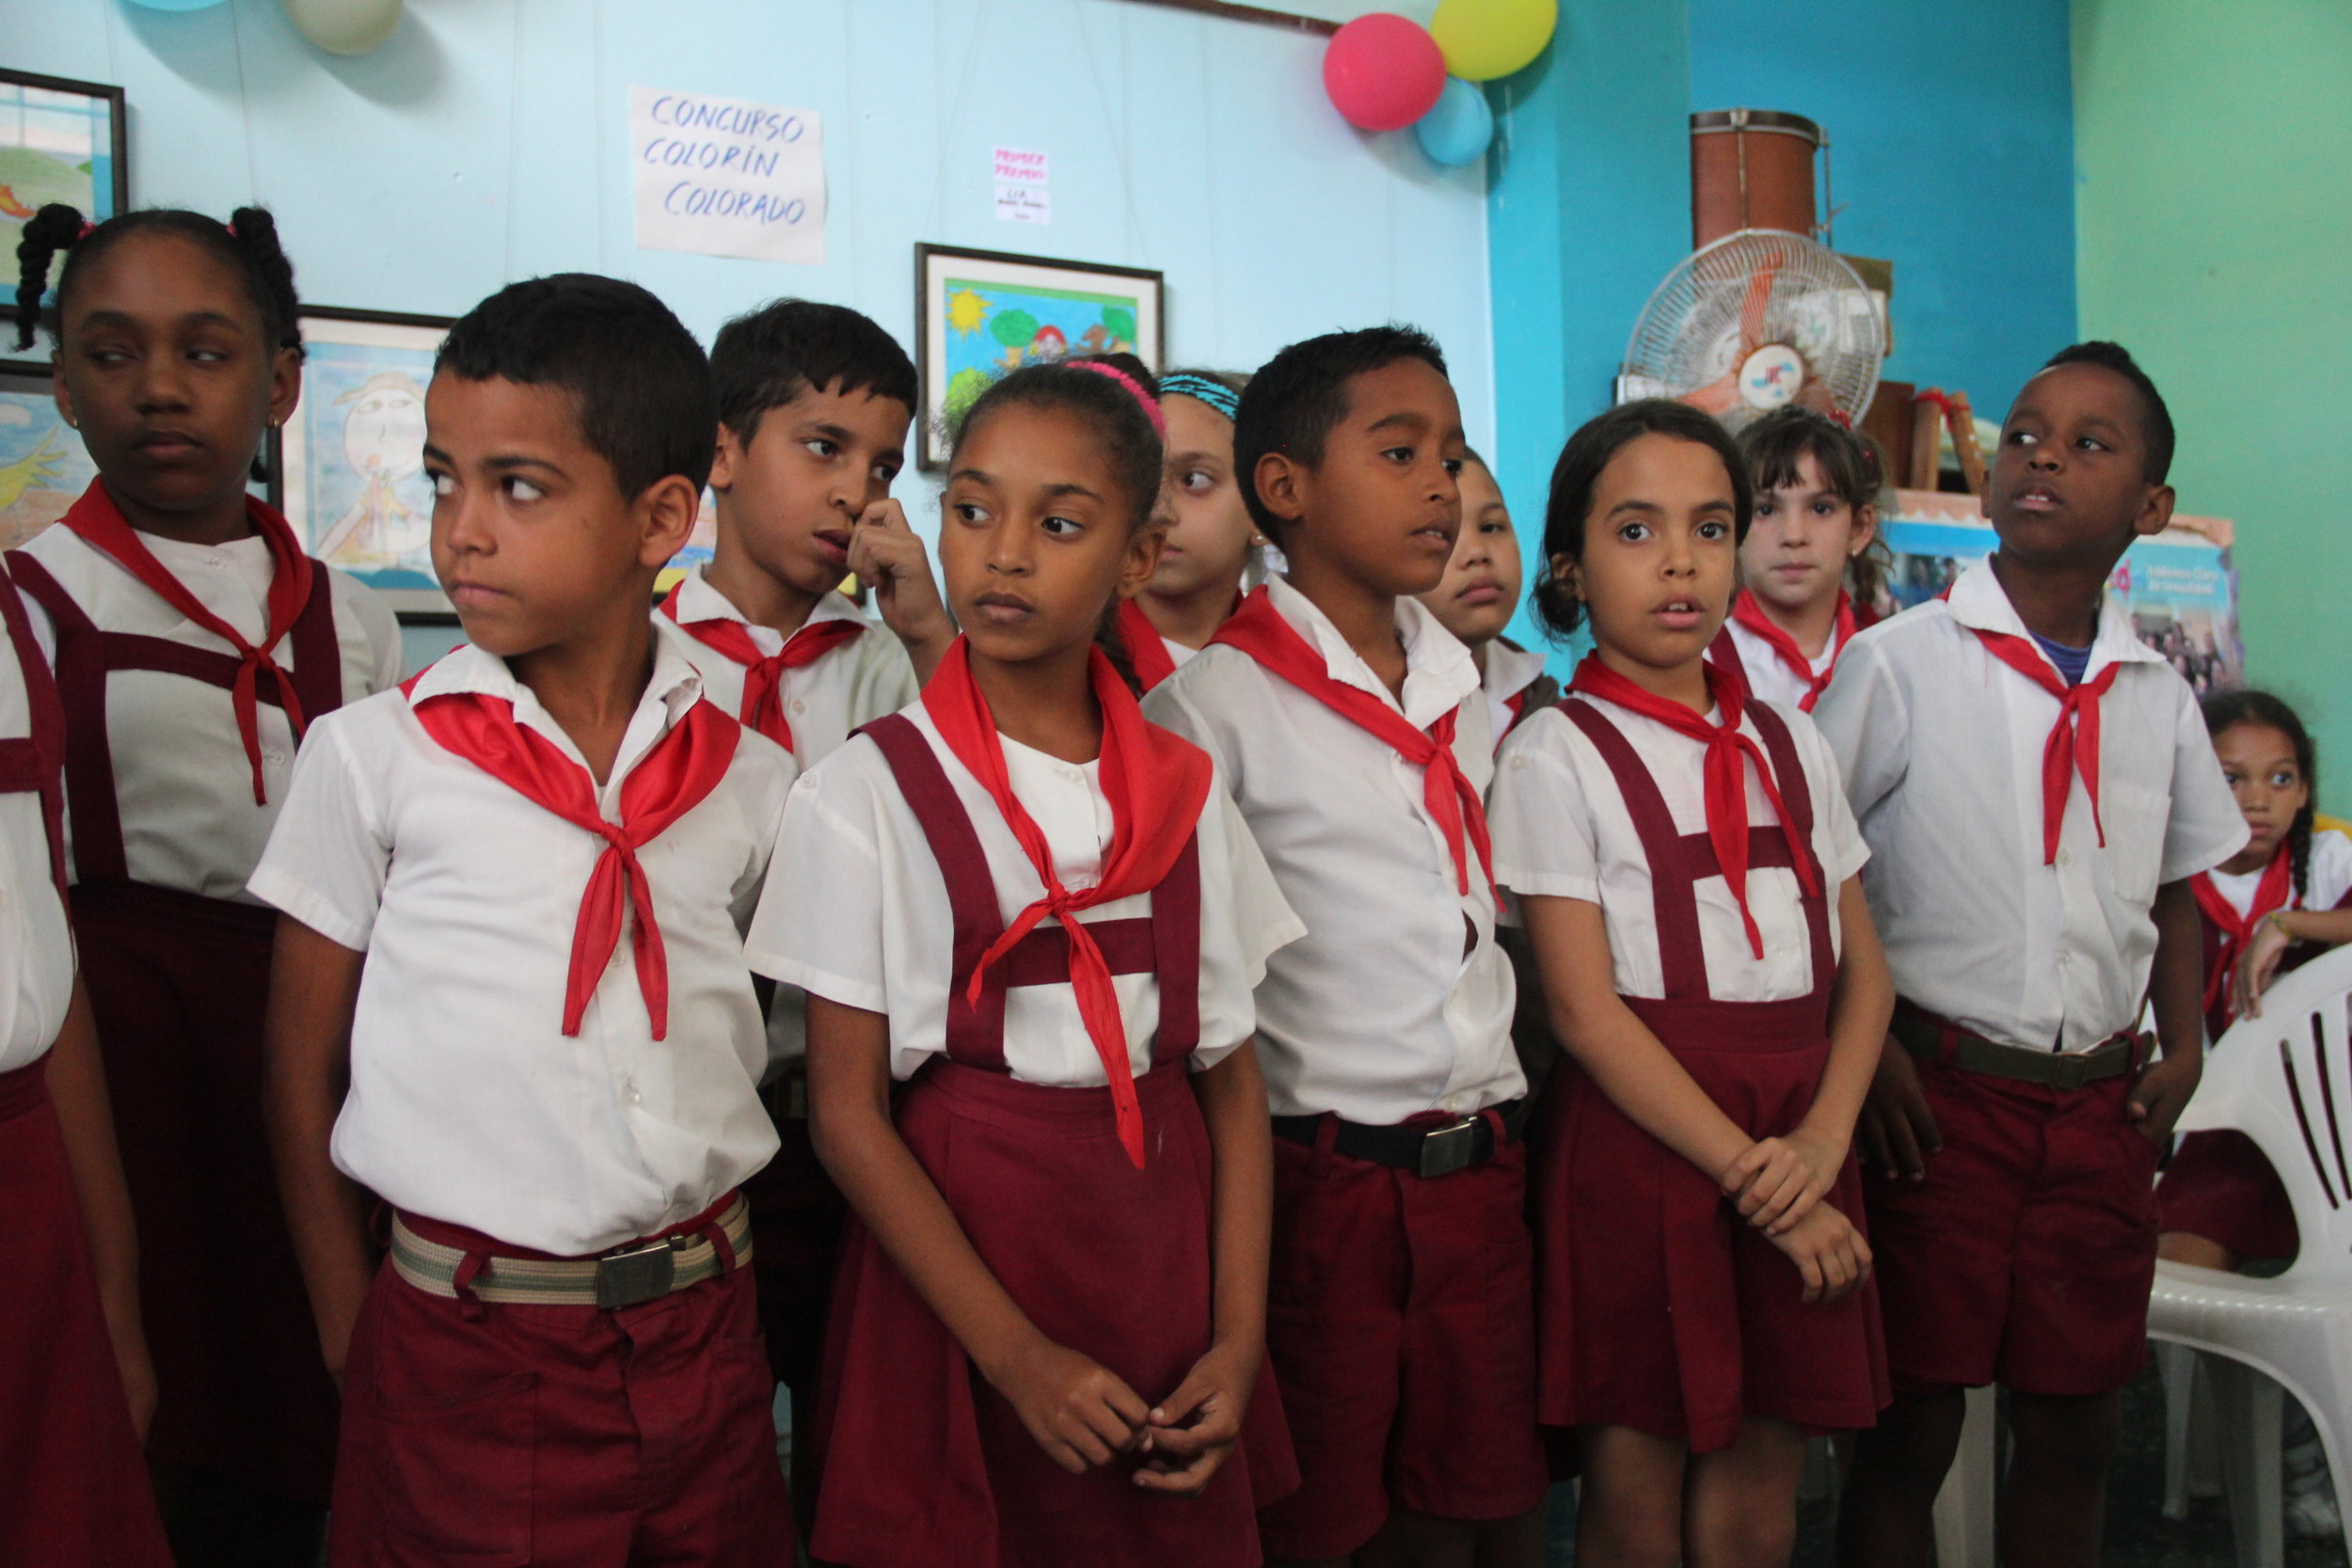 Education Practicums in havana - In partnership with one of Cuba's top universities of education, these programs offer the rare opportunity for deep immersion in Cuba's classrooms, engagement with students and teachers, and access to one of the island's premier teacher training programs.